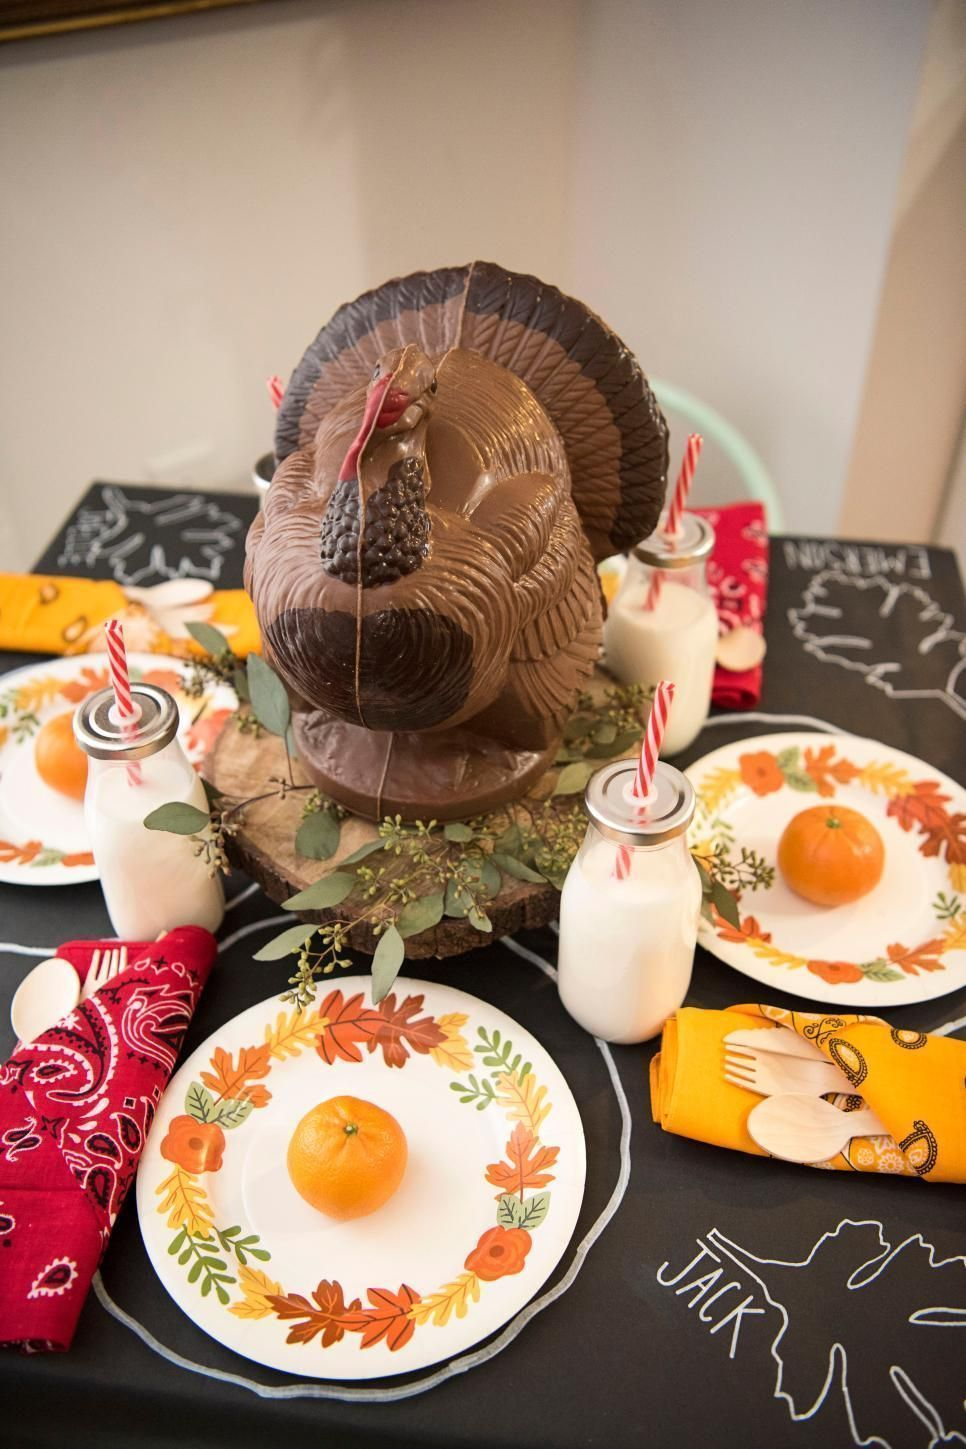 45 Thanksgiving Table Setting Ideas 45 Thanksgiving Table Setting Ideas | HGTV 45 Thanksgiving Table Setting Ideas 45 Thanksgiving Table Setting Ideas | HGTV 45 Thanksgiving Table Setting Ideas 45 Thanksgiving Table Setting Ideas | HGTV 45 Thanksgiving Table Setting Ideas 45 Thanksgiving Table Sett | simple thanksgiving table place settings #thanksgivingtablesettings #thanksgivingtablesettingideas #thanksgivingtablesettings #thanksgivingtablesettingideas #thanksgivingtablesettings #thanksgivingt #thanksgivingtablesettings